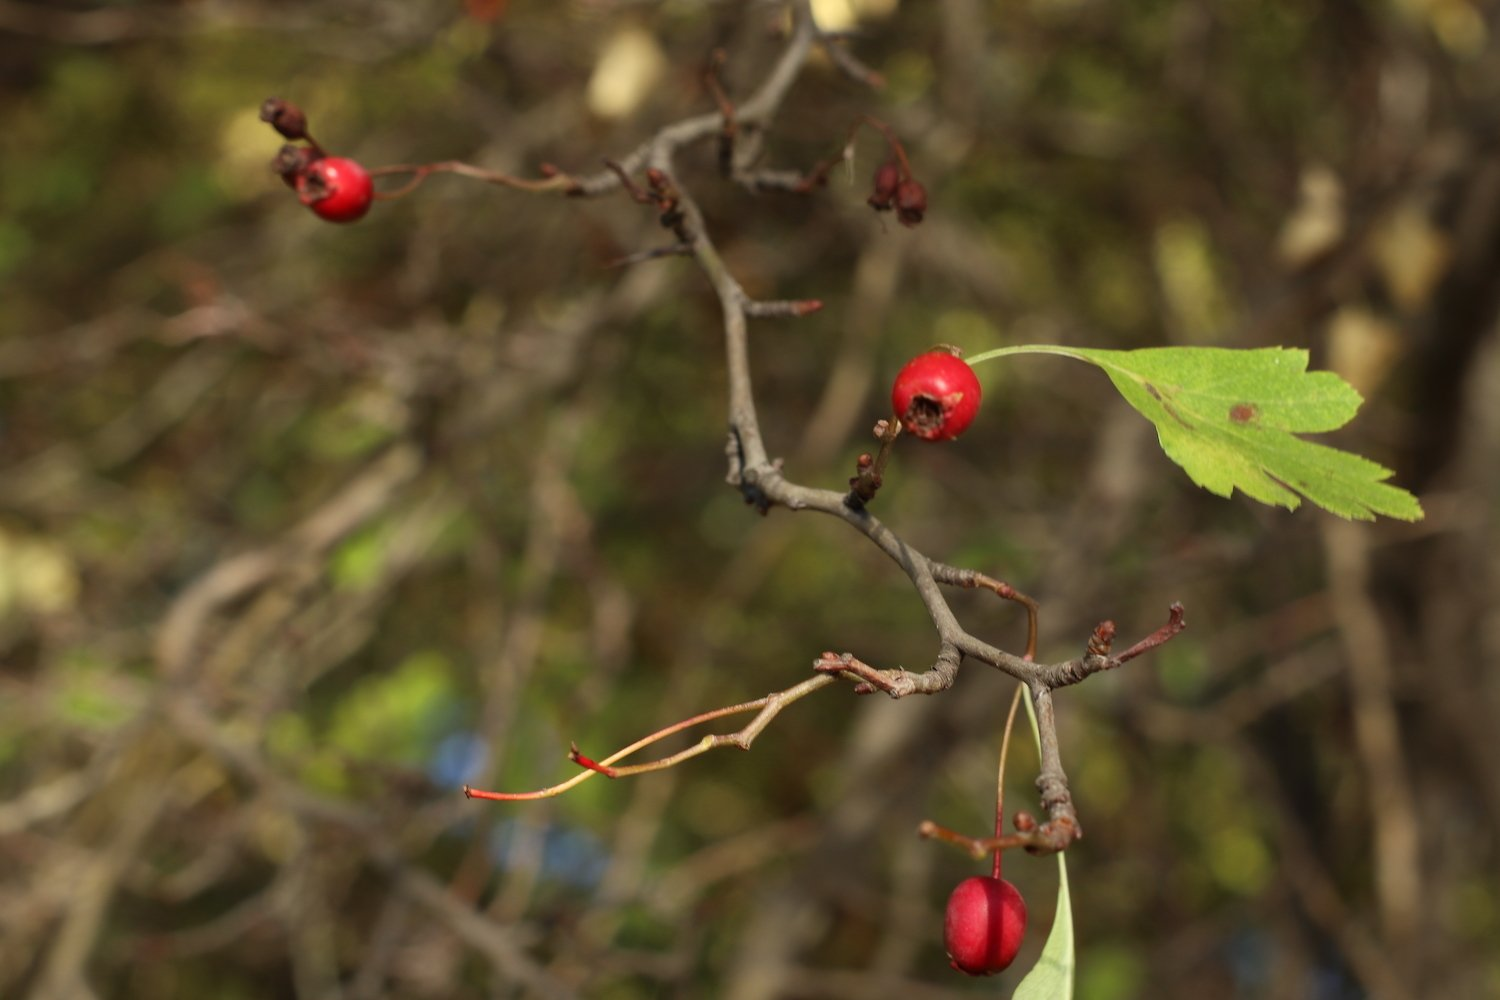 rosehip bush with red berries close-up example image 1